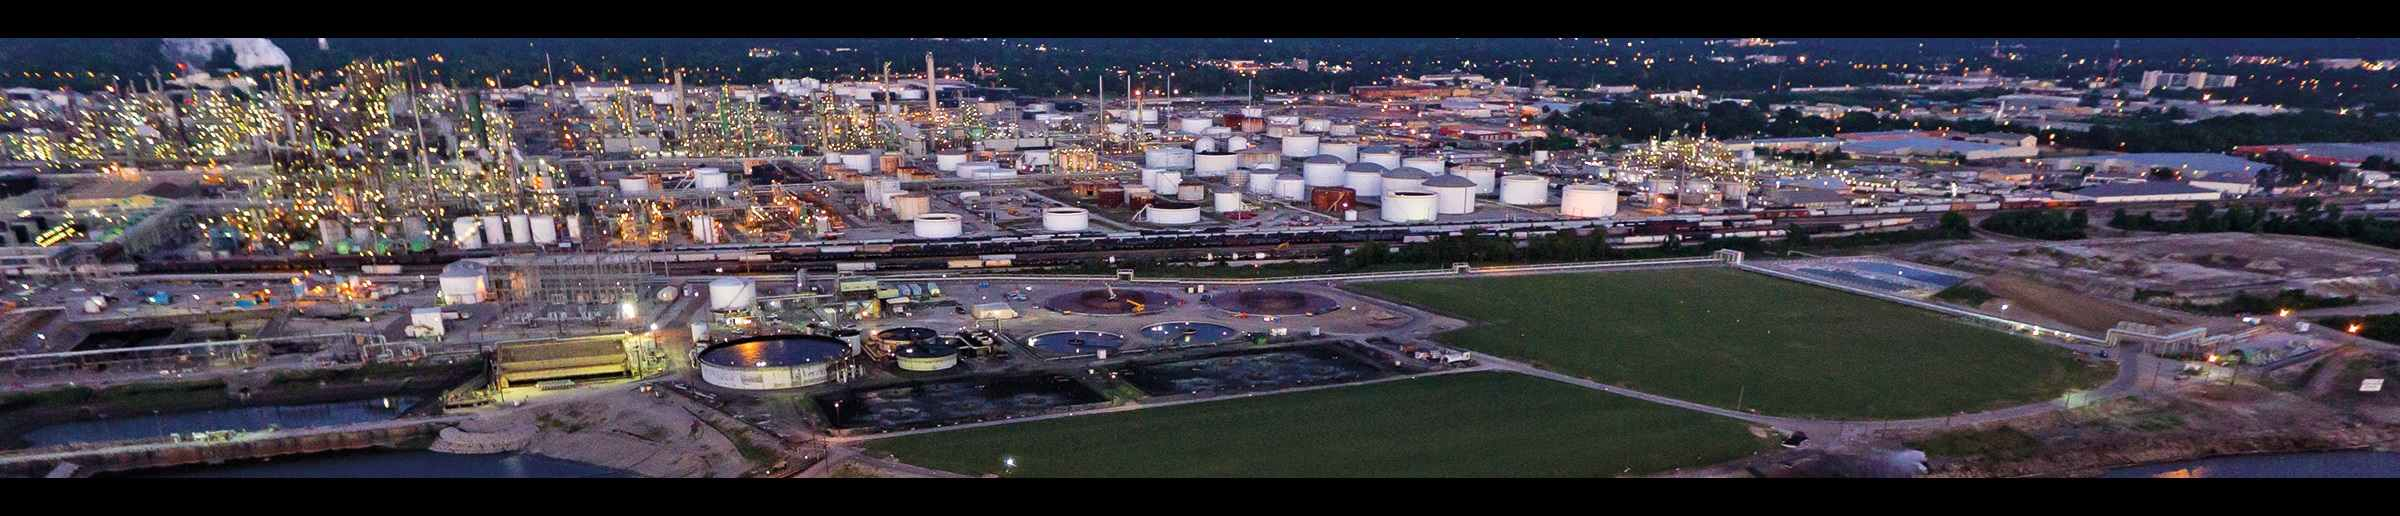 baton-rouge-refinery_page-banner.jpg